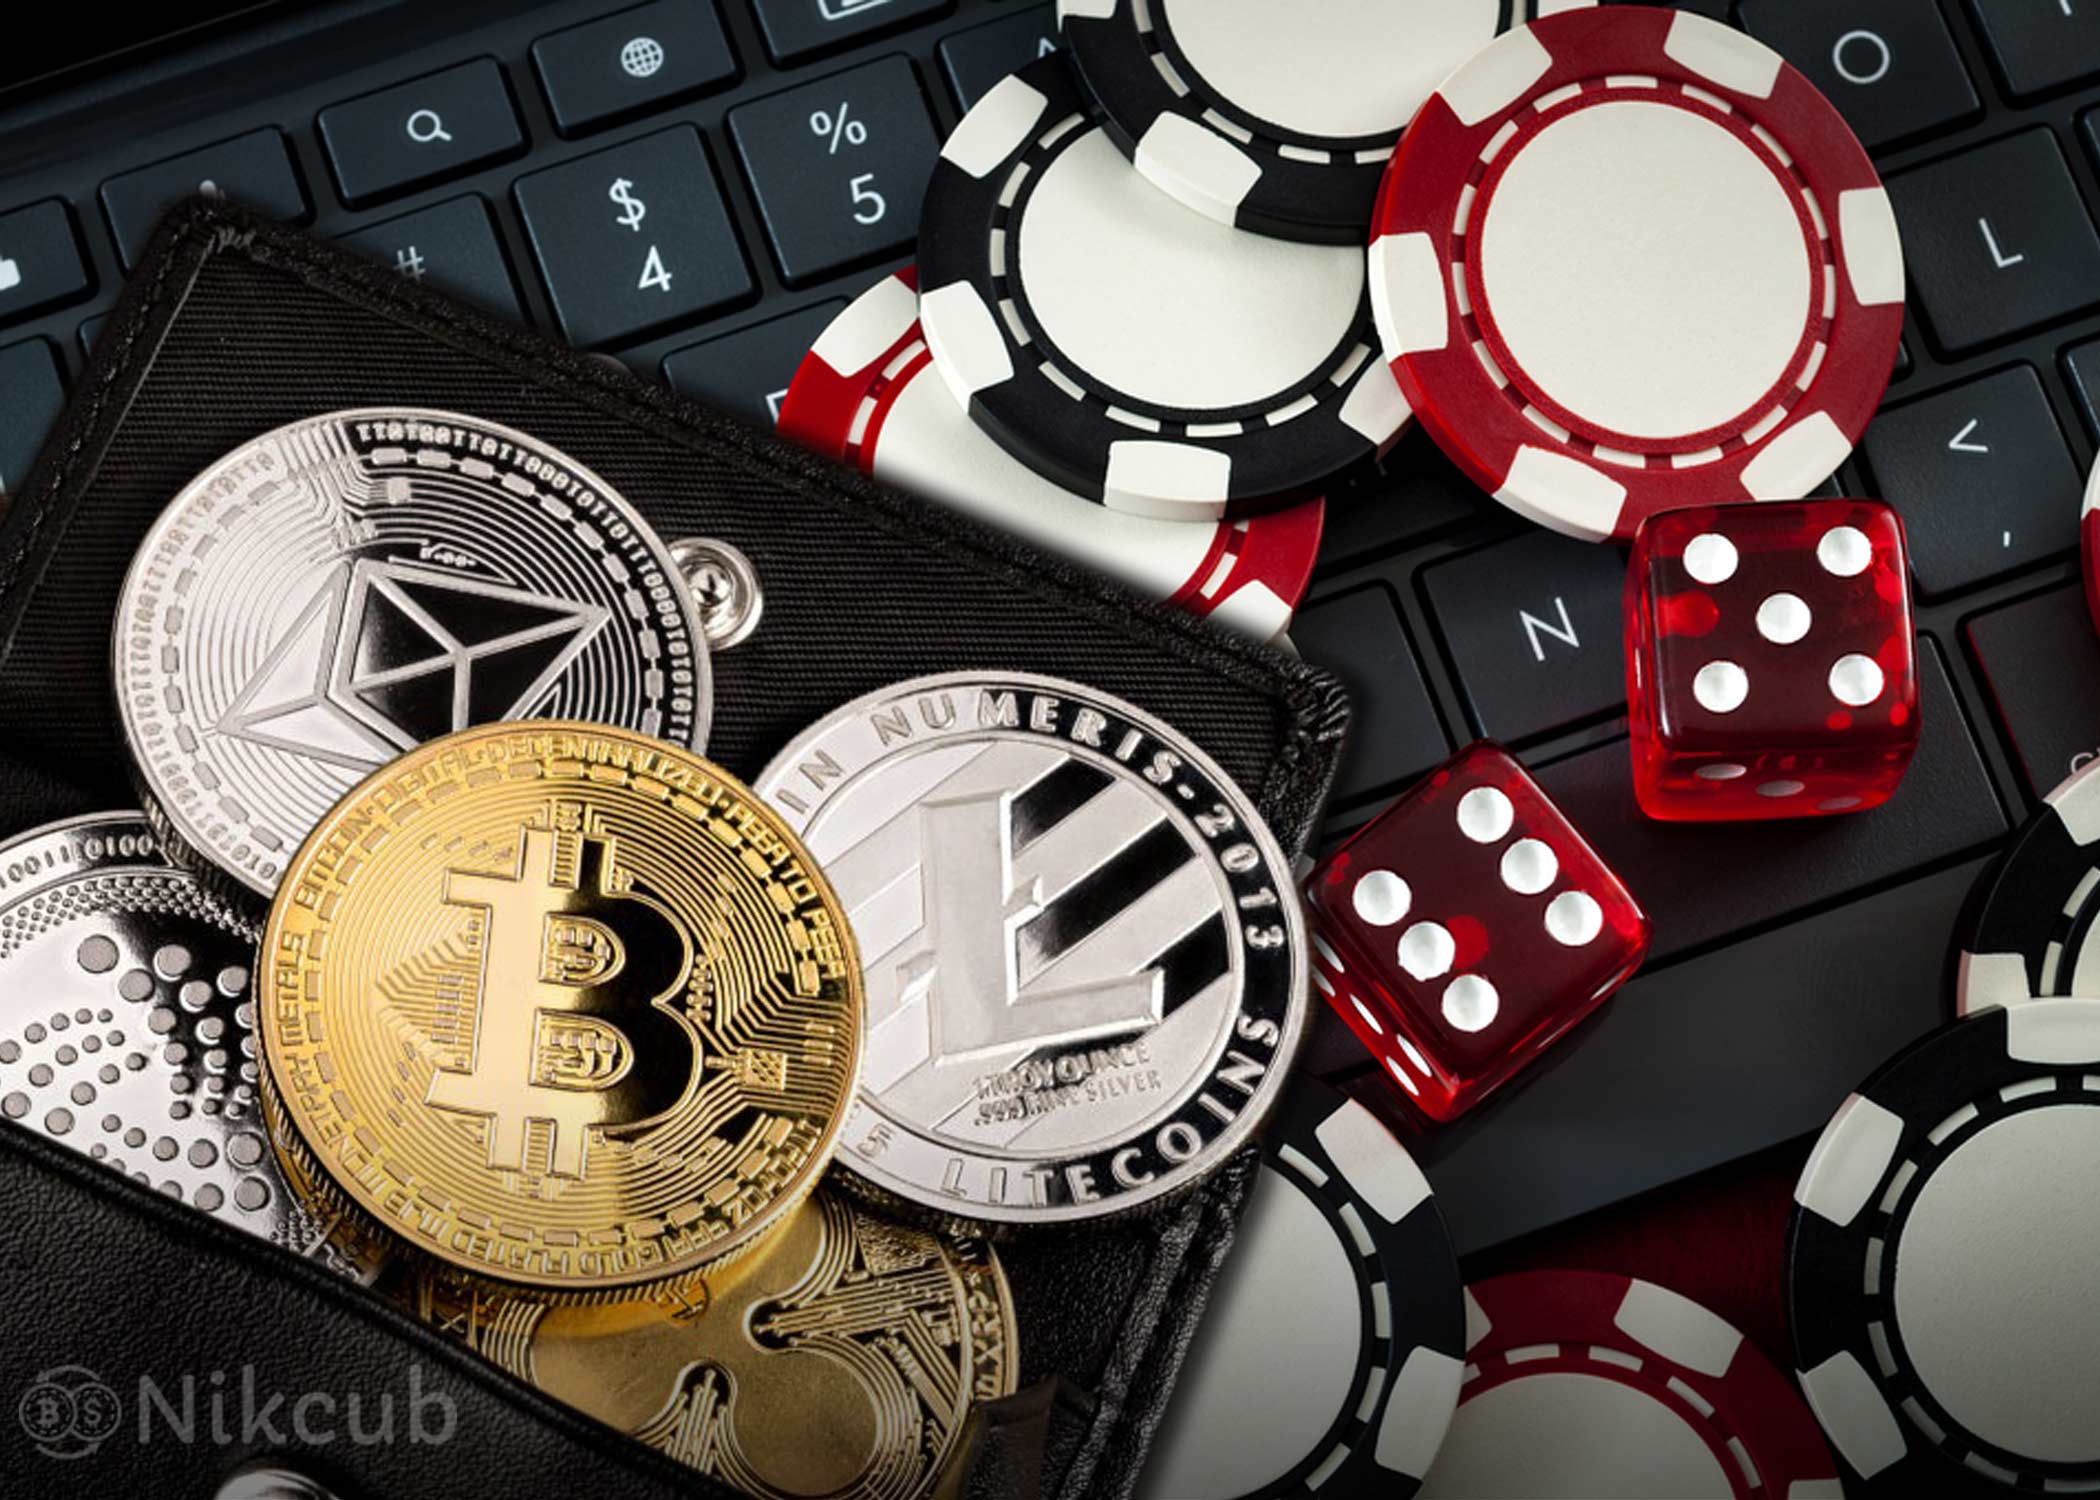 nikcub_Using-Bitcoin-In-Japanese-Online-Casino